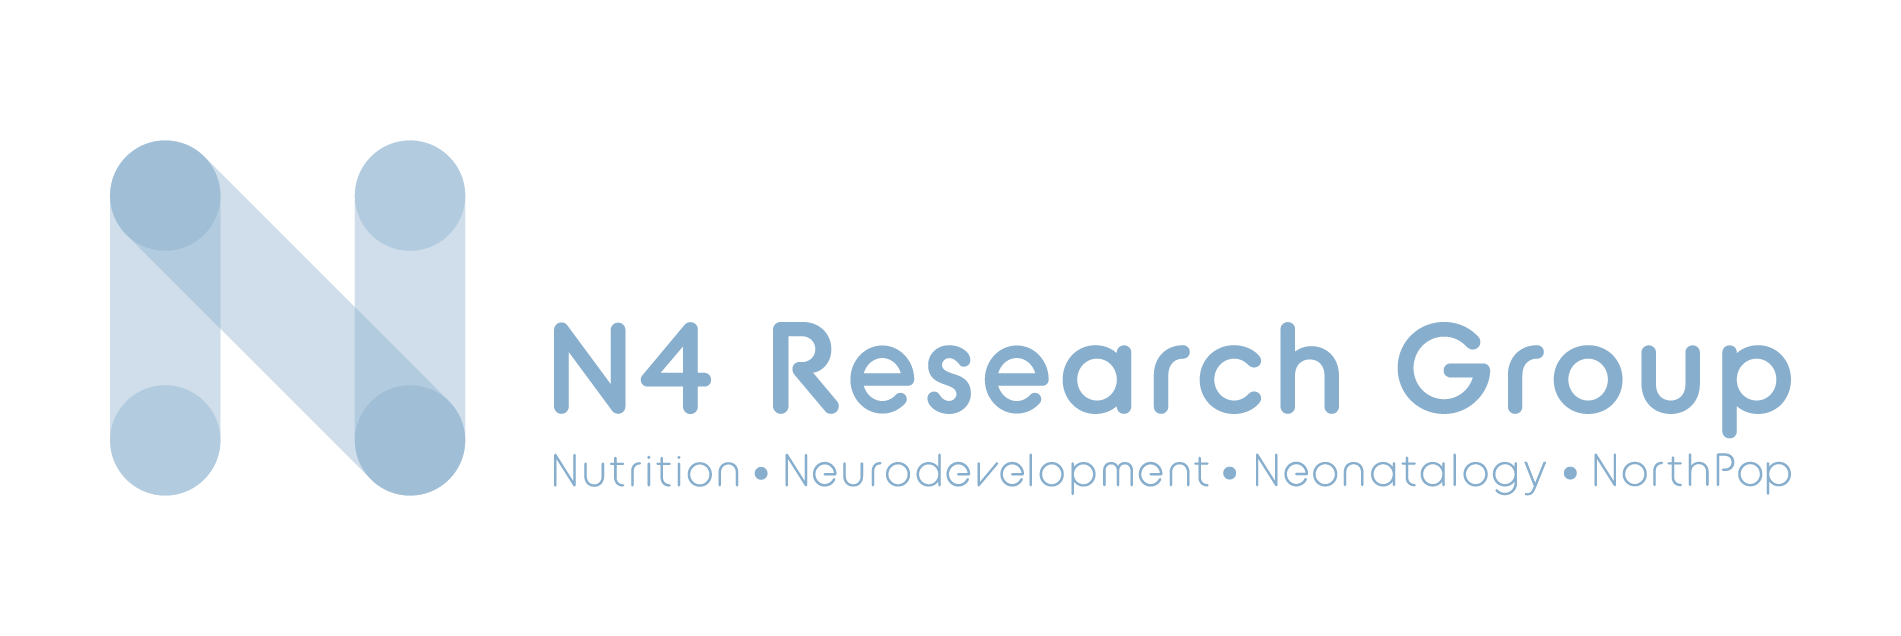 n4researchgroup